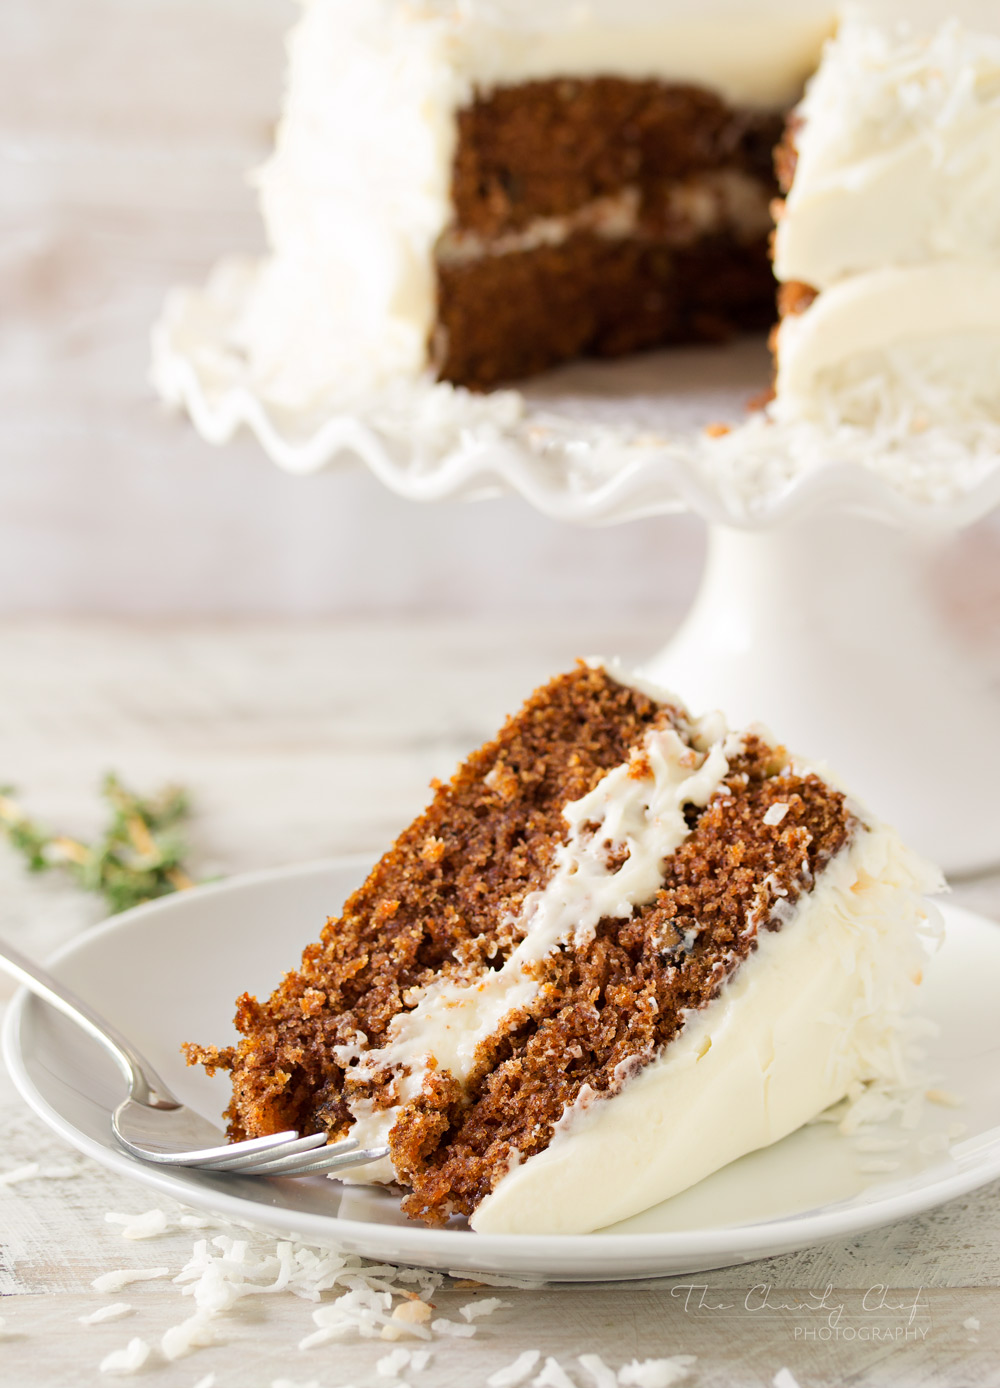 Homemade Carrot Cake With Crushed Pineapple